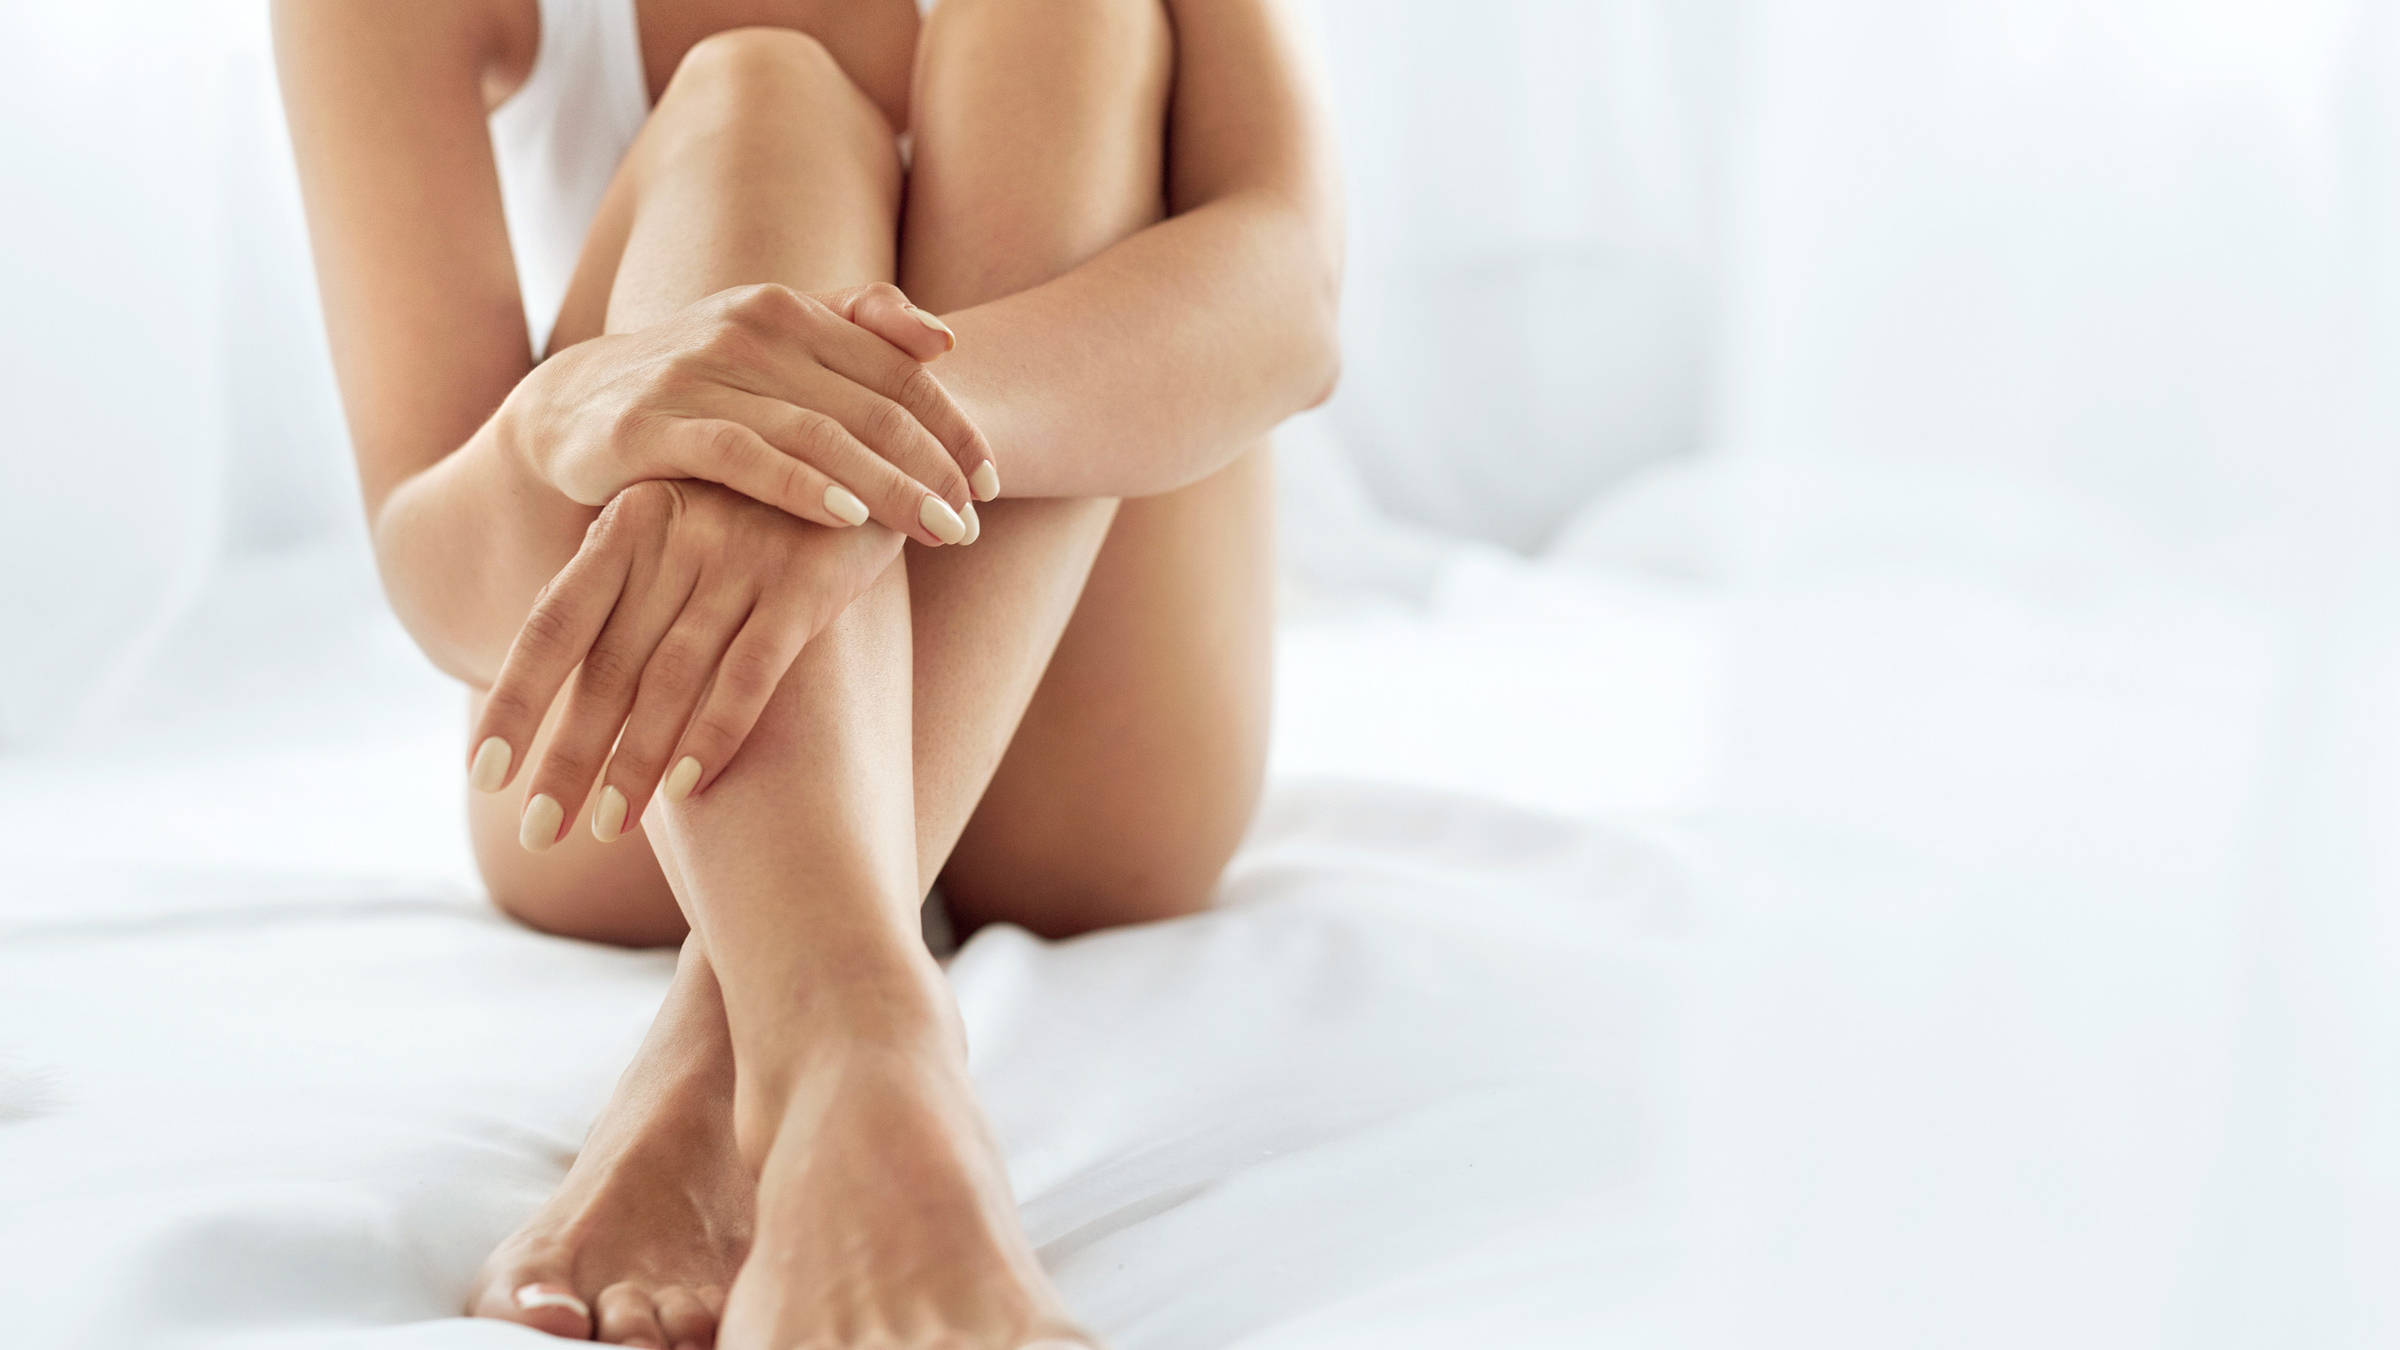 Does Laser Hair Removal Work How Much Does The Treatment Cost And